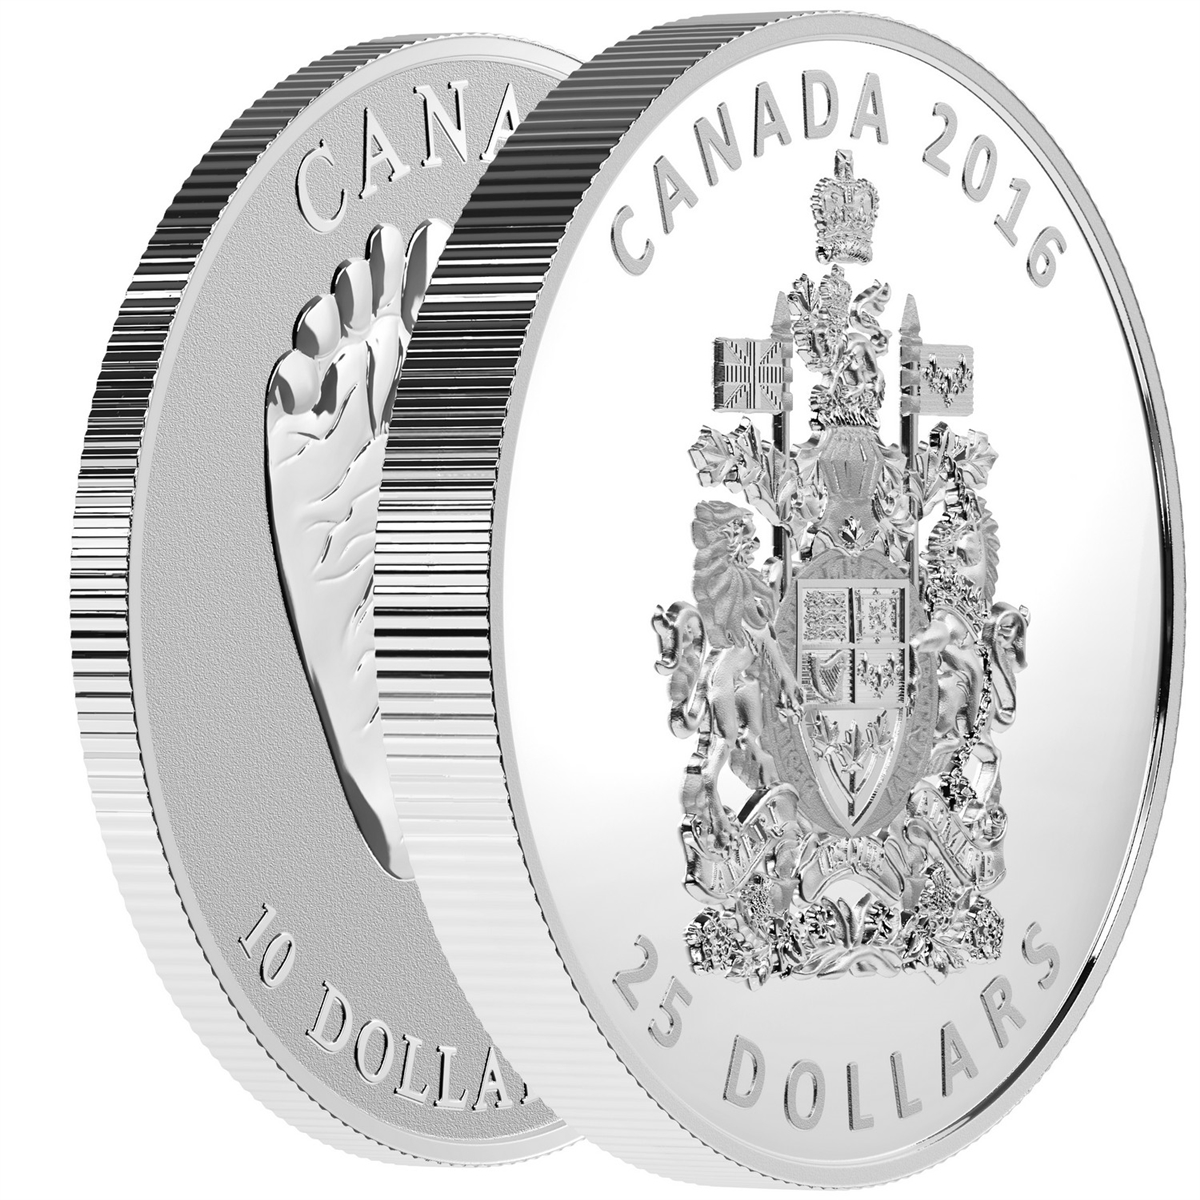 2016 25 fine silver piedfort the coat of arms of canada